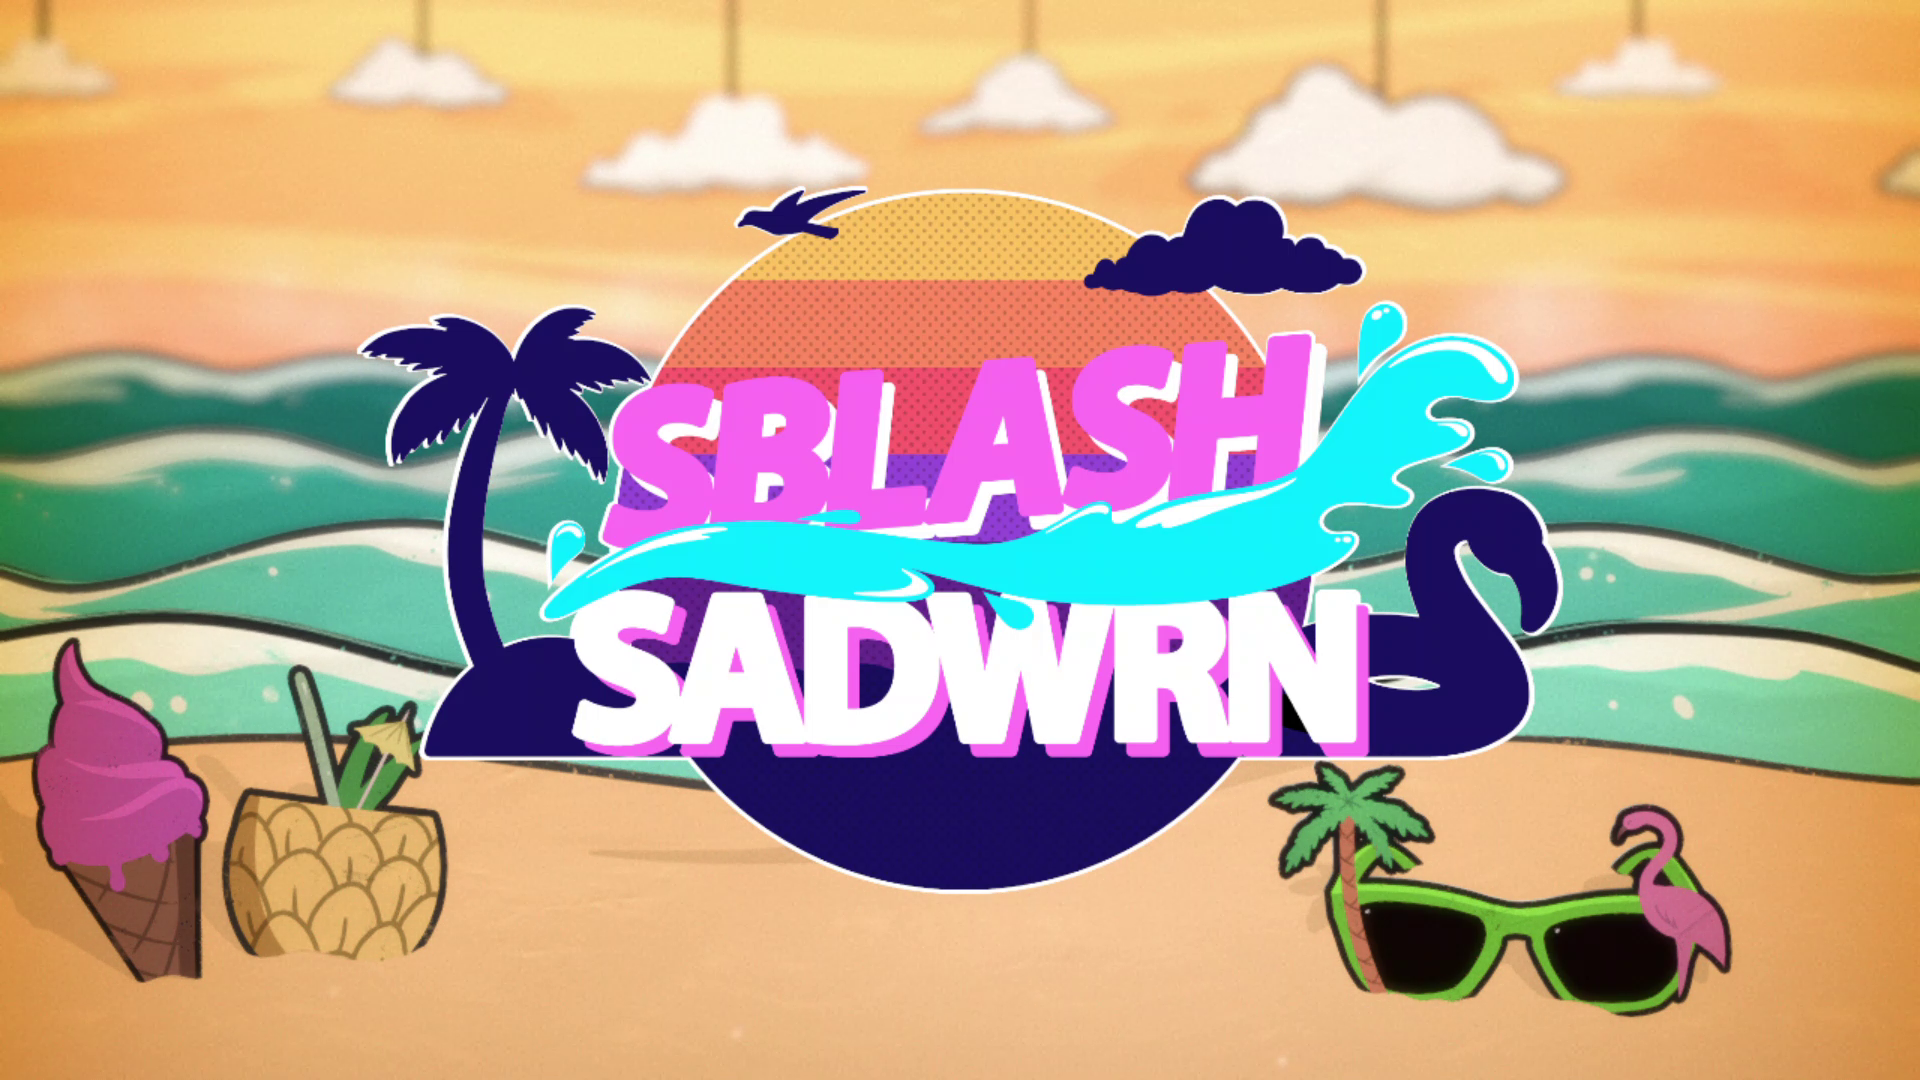 Thud Media - Sblash Sadwrn (Live TV studio game)